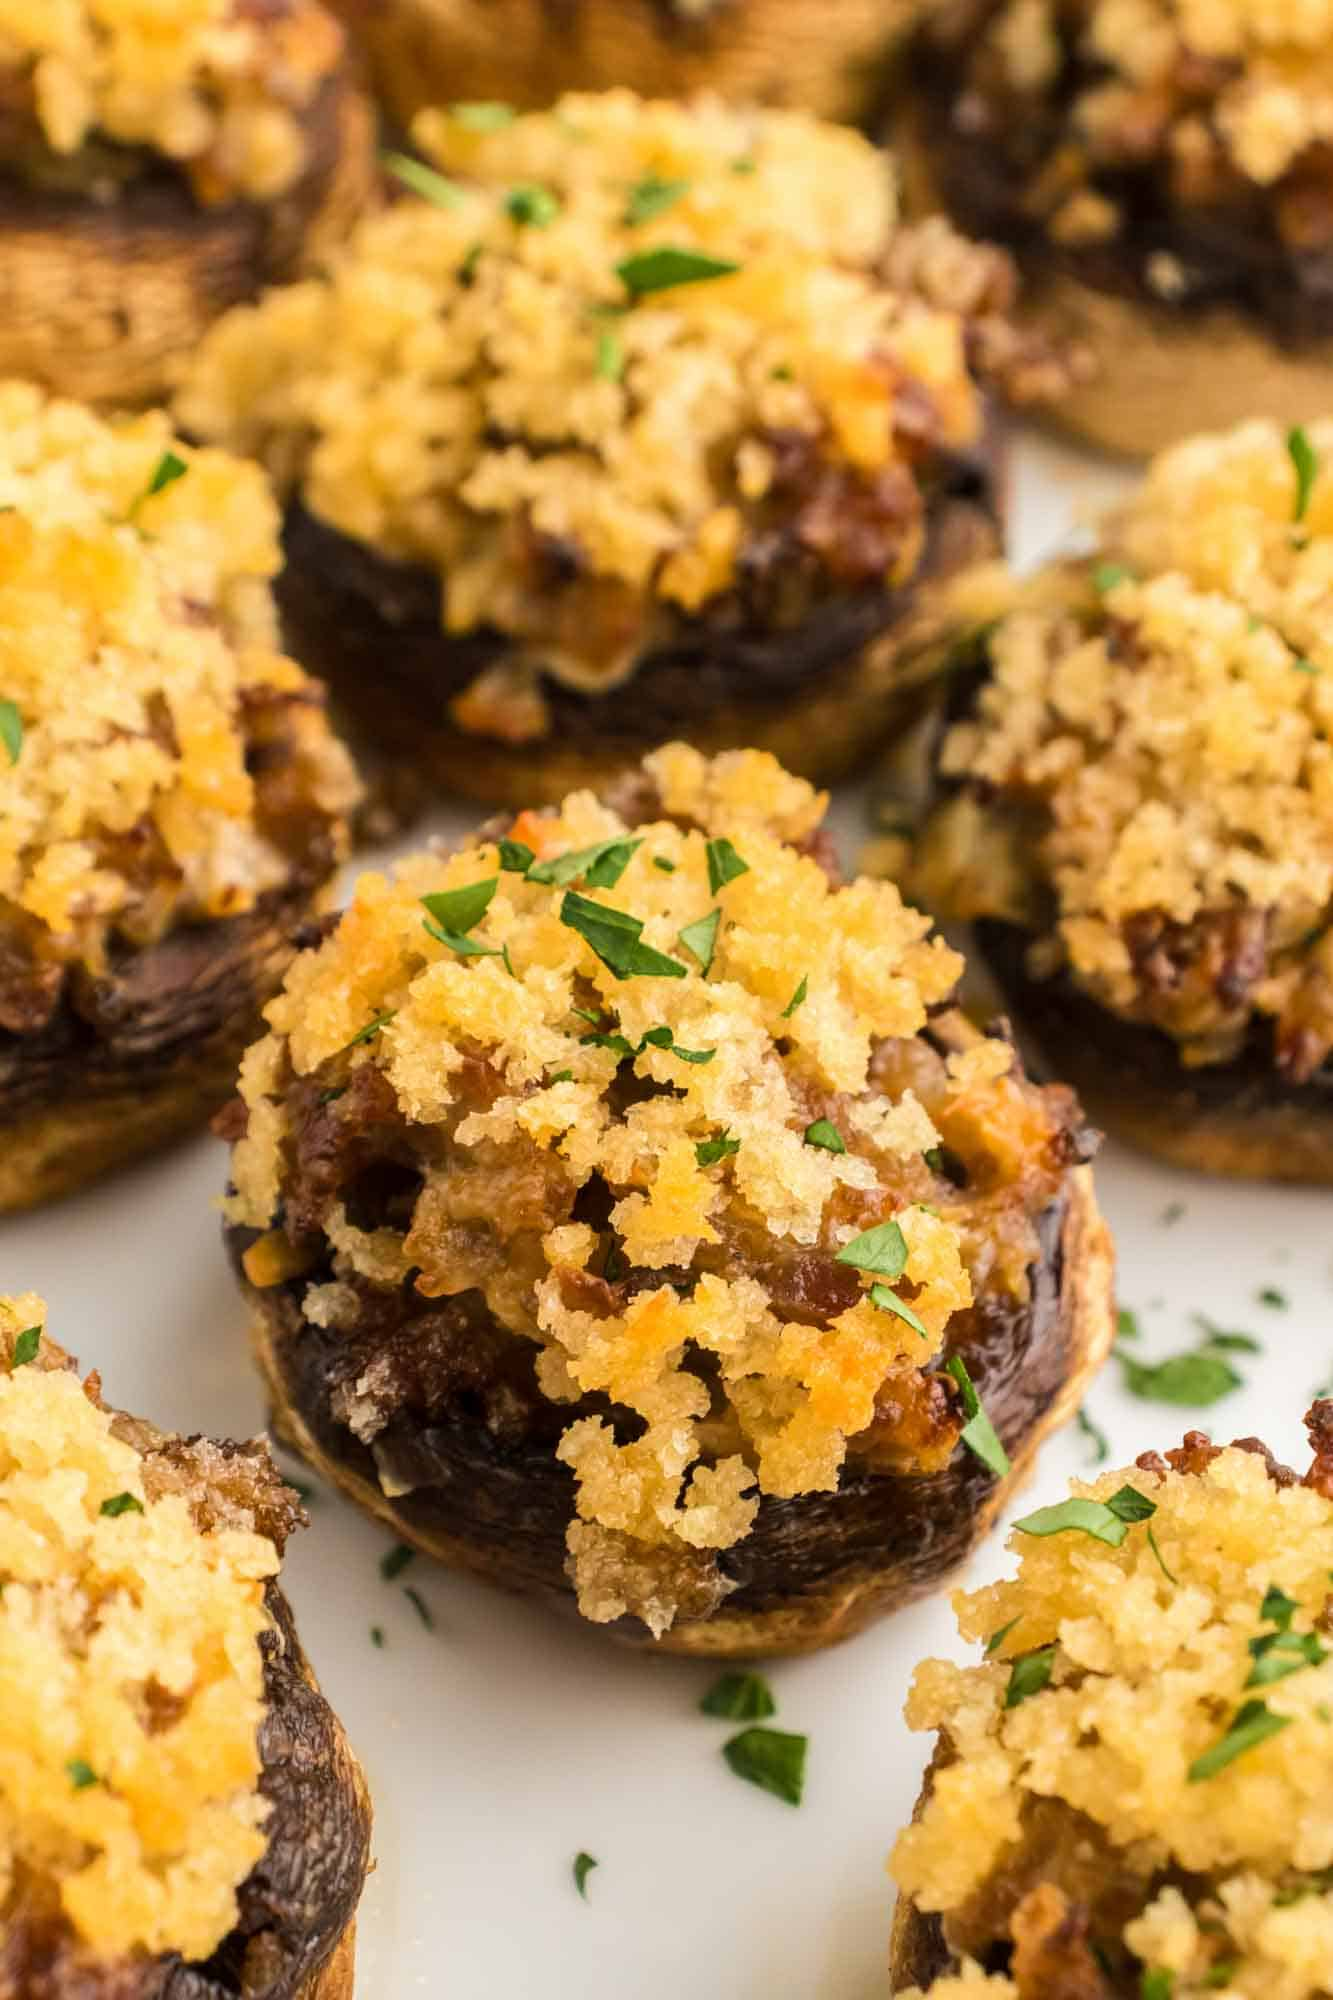 Sausage stuffed mushrooms served on a white plate